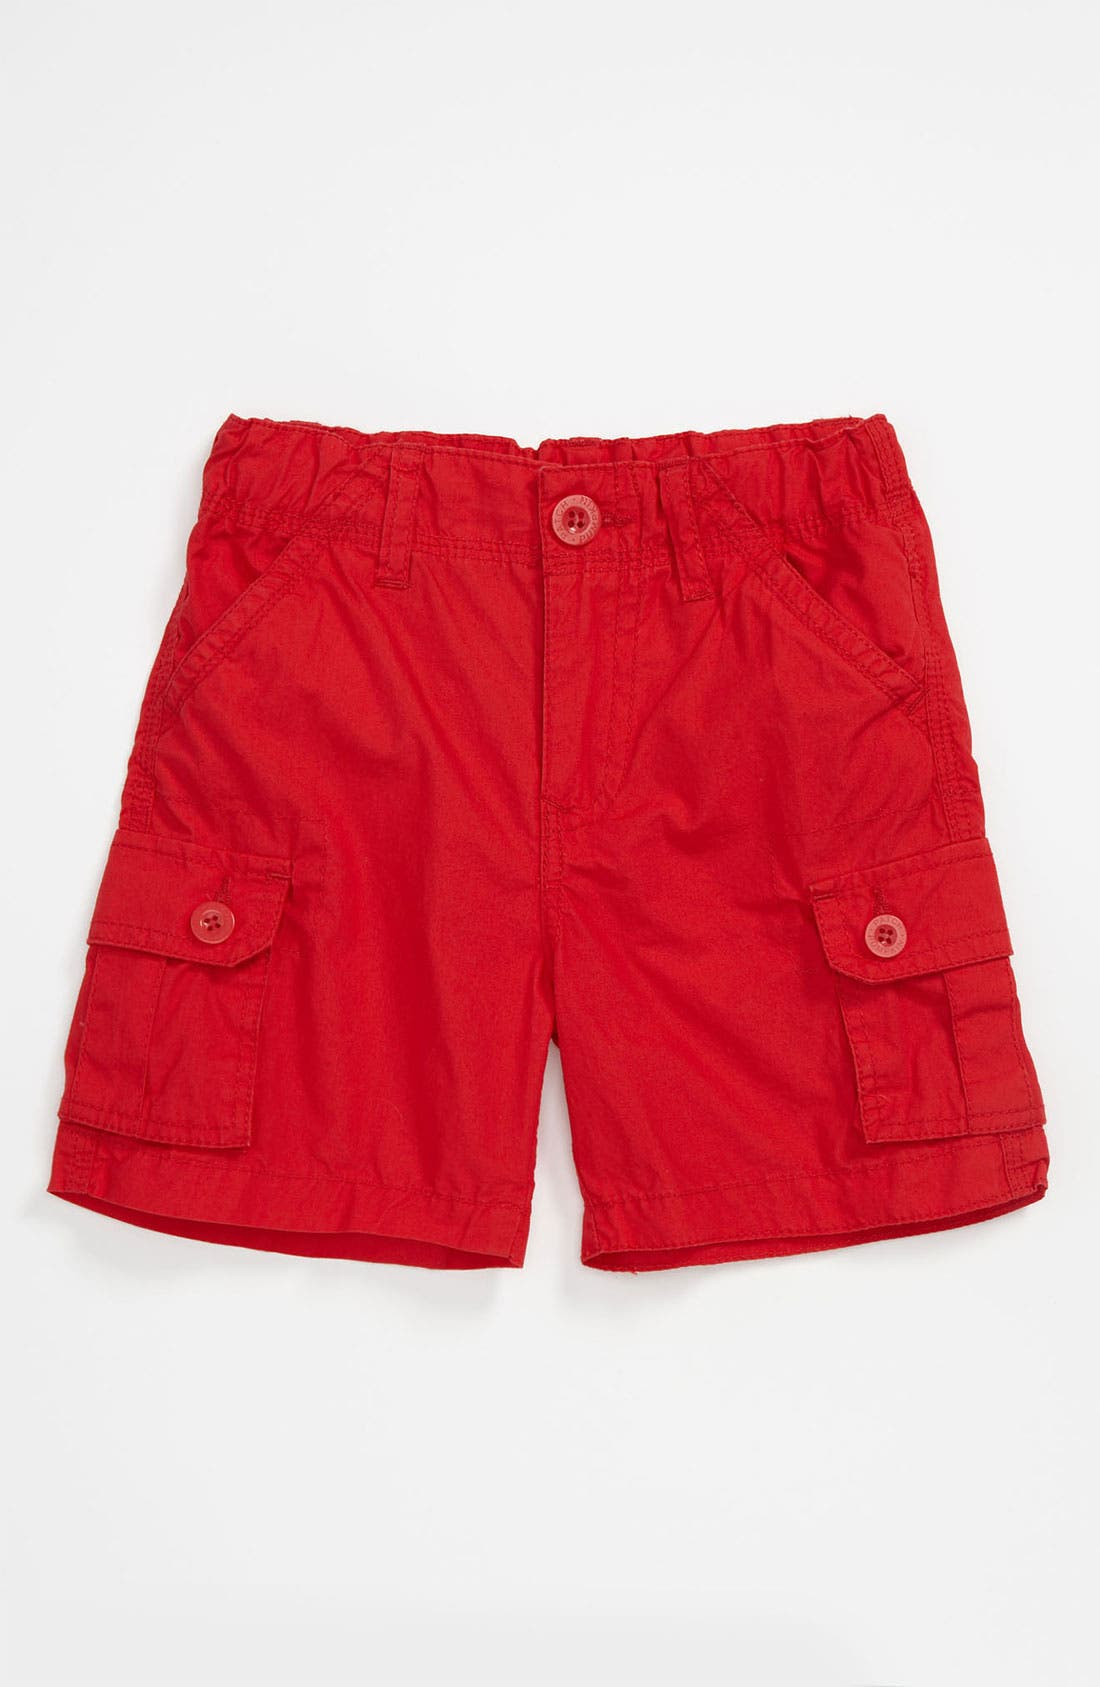 Alternate Image 1 Selected - Pumpkin Patch Poplin Shorts (Infant)